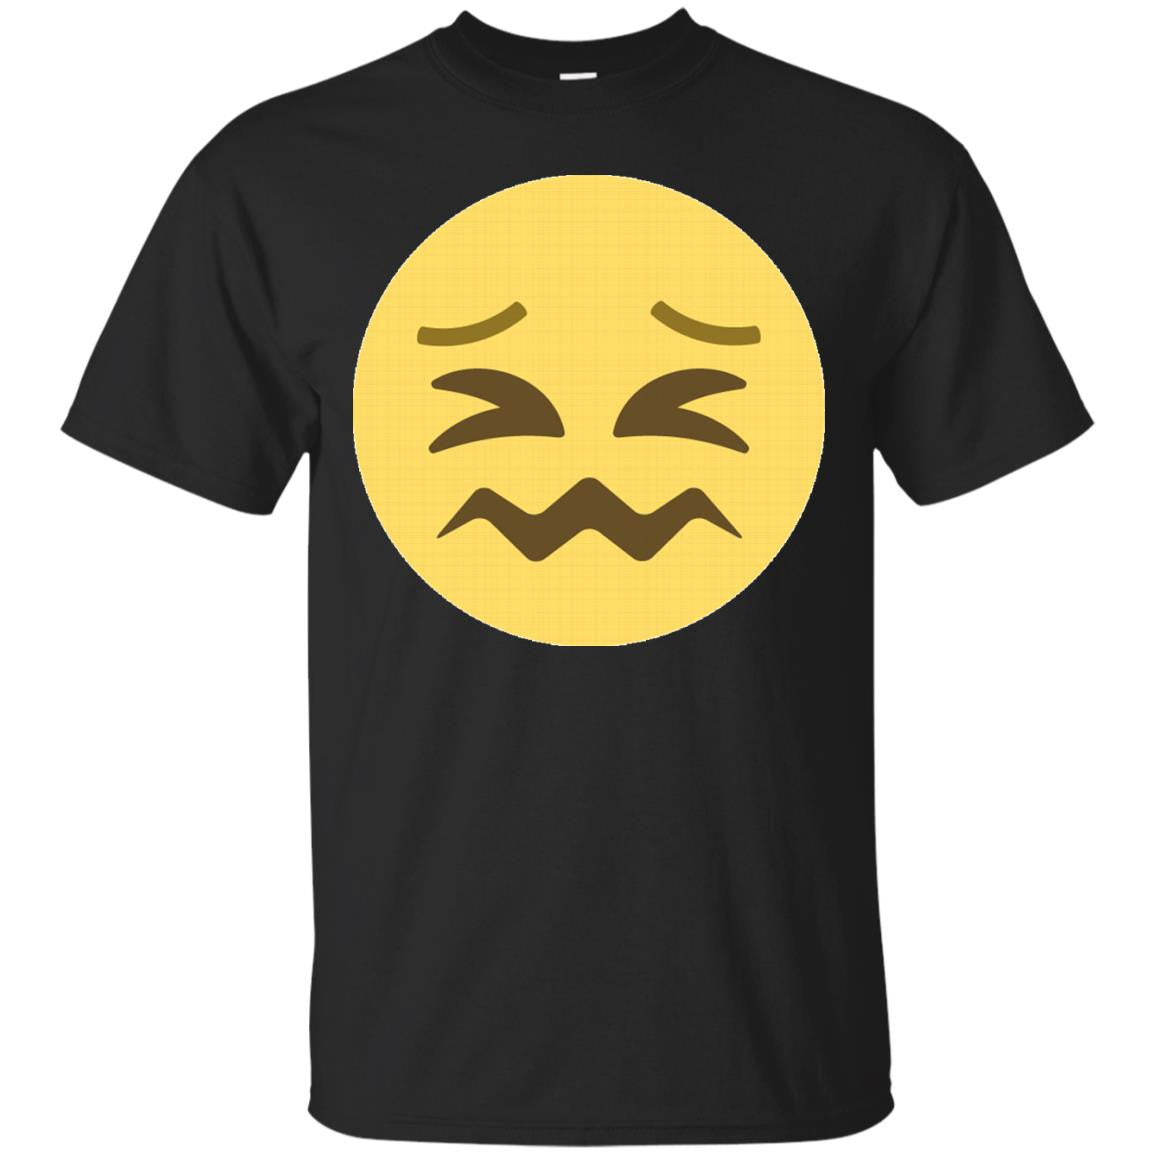 Scrunched up Face Emoji T-Shirt